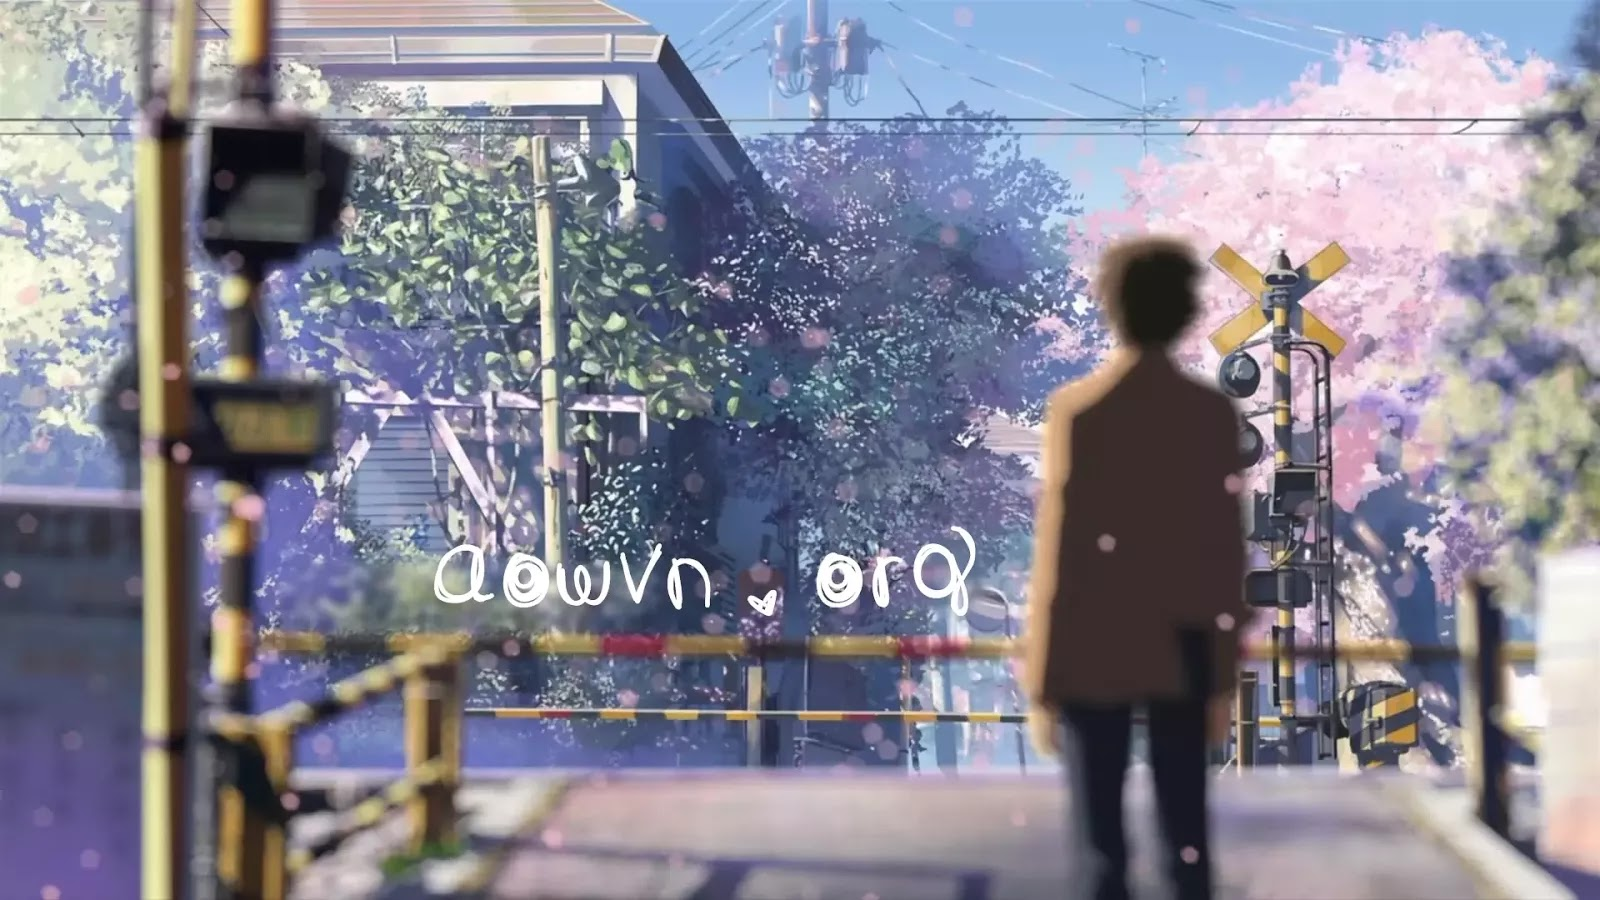 5cm aowvn - [ Full HD ] 5 Centimeters Per Second - 5 Centimet trên giây | Anime Vietsub Online